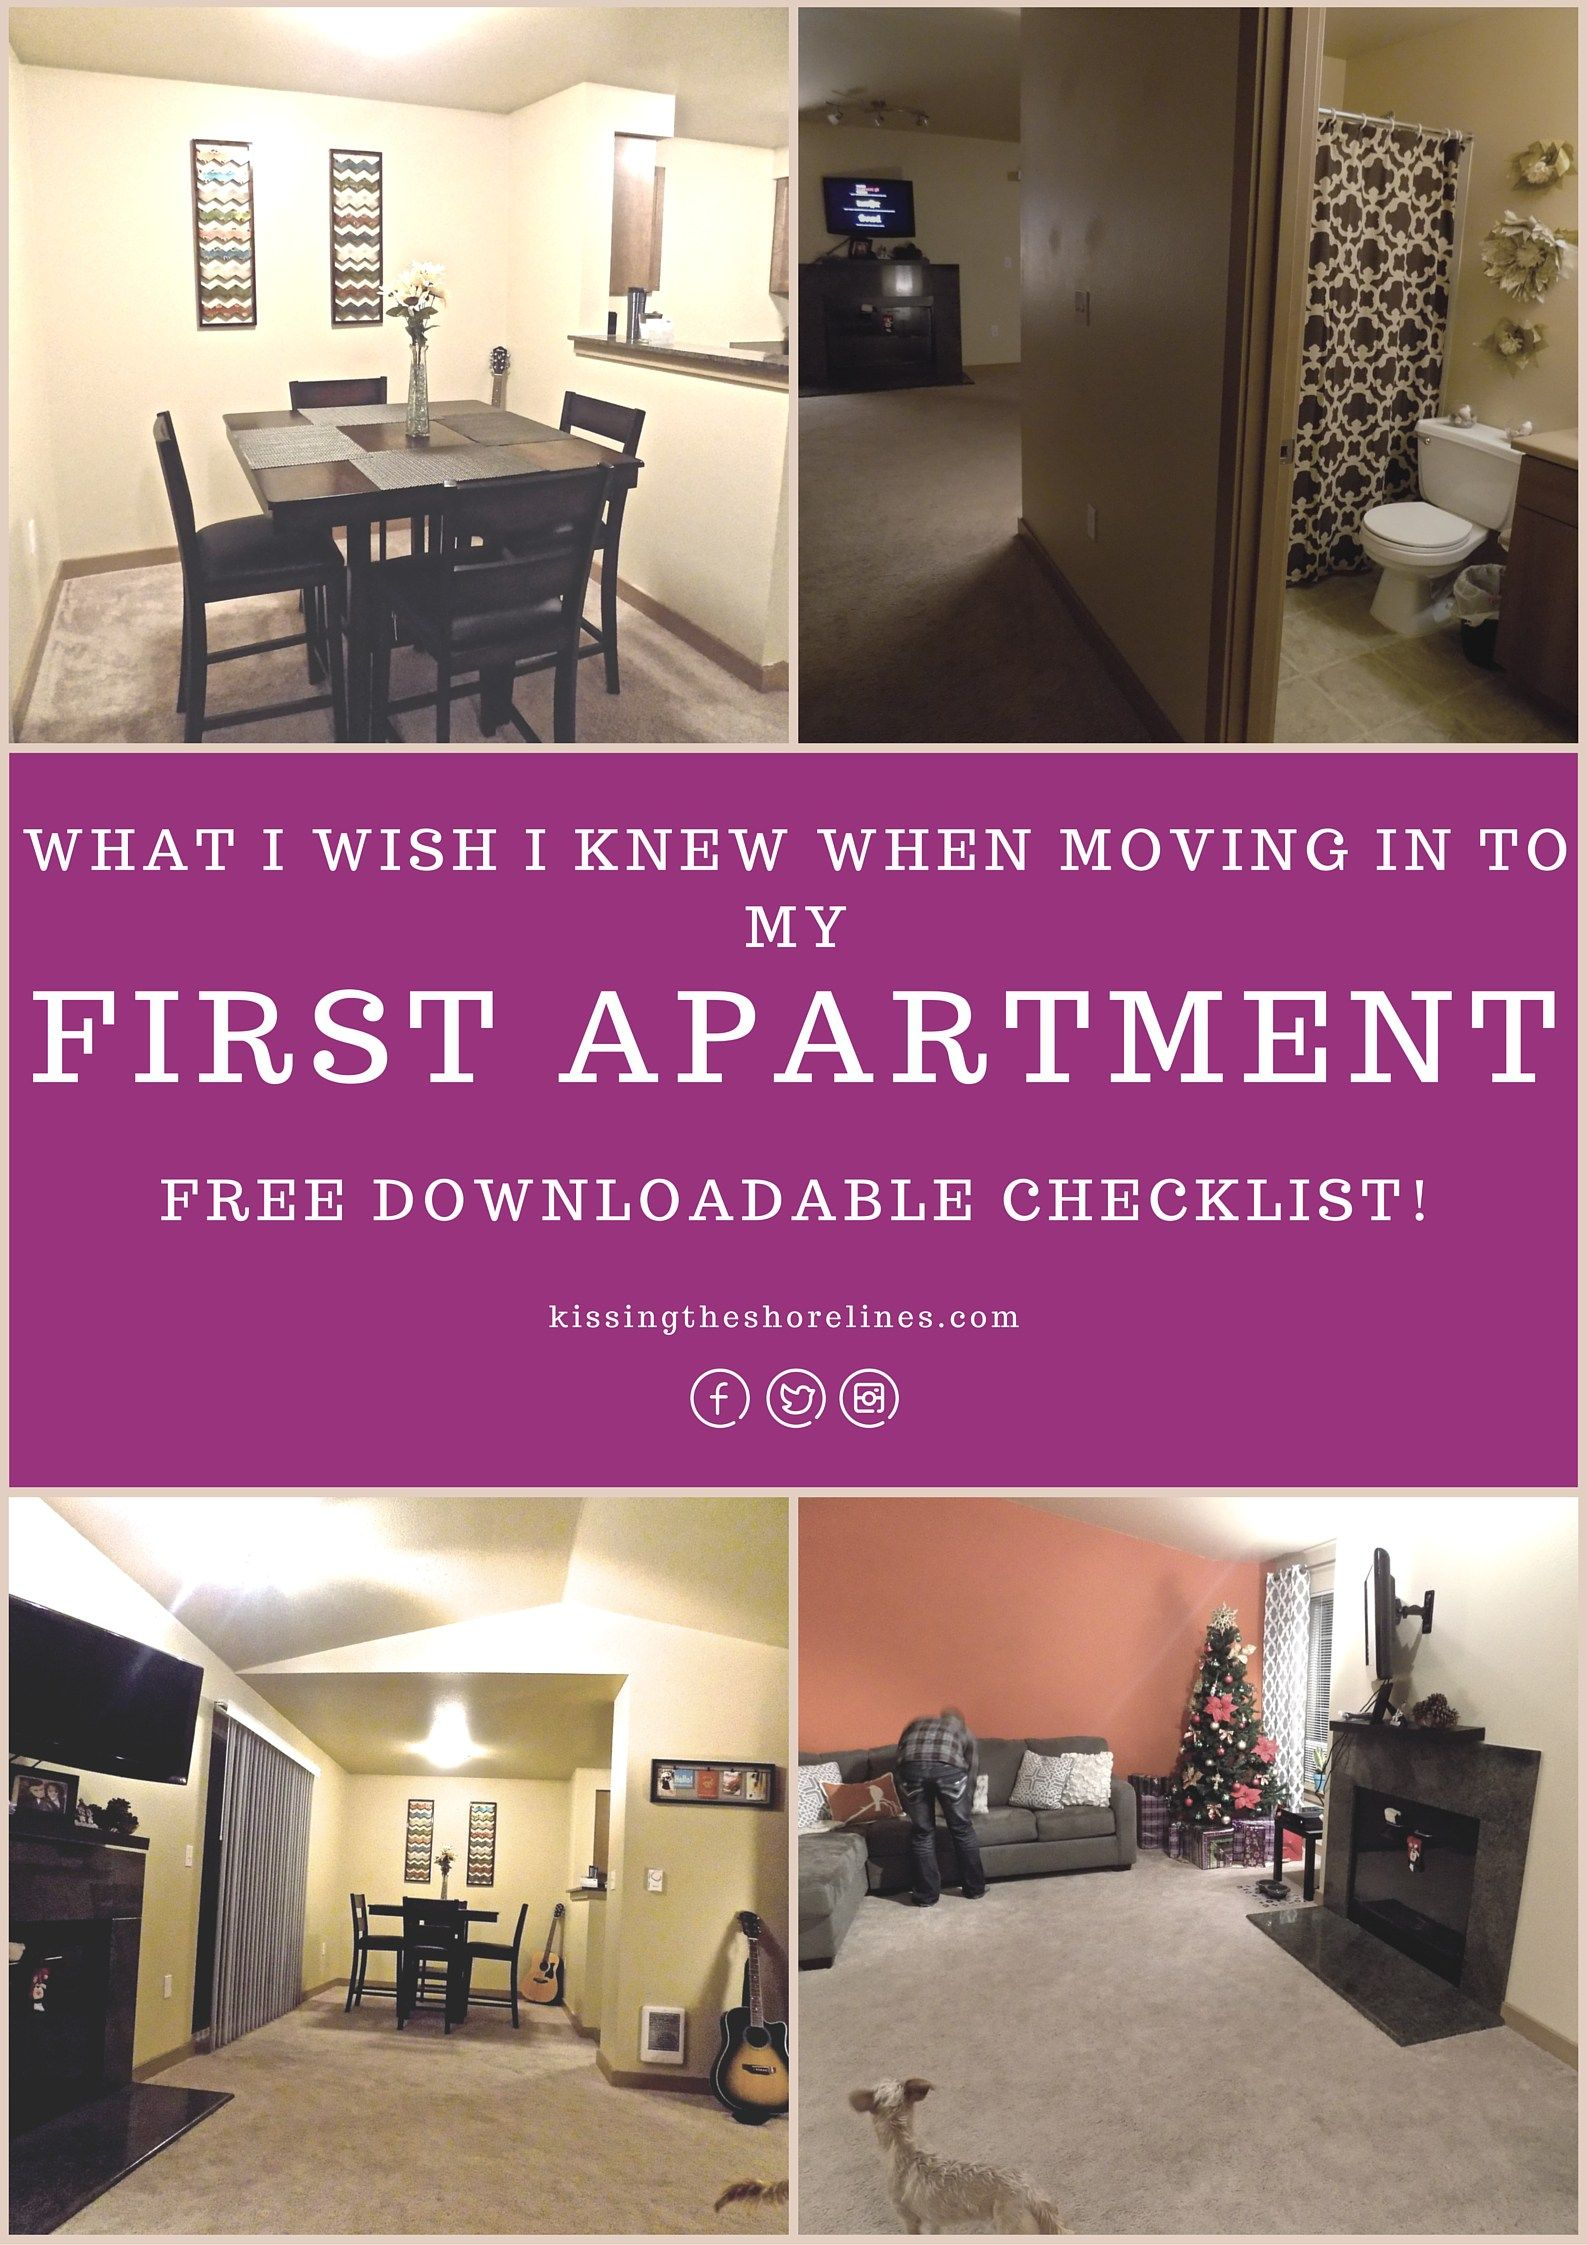 Cool List Of Things To Look For When Checking Out Apartments And A Essential